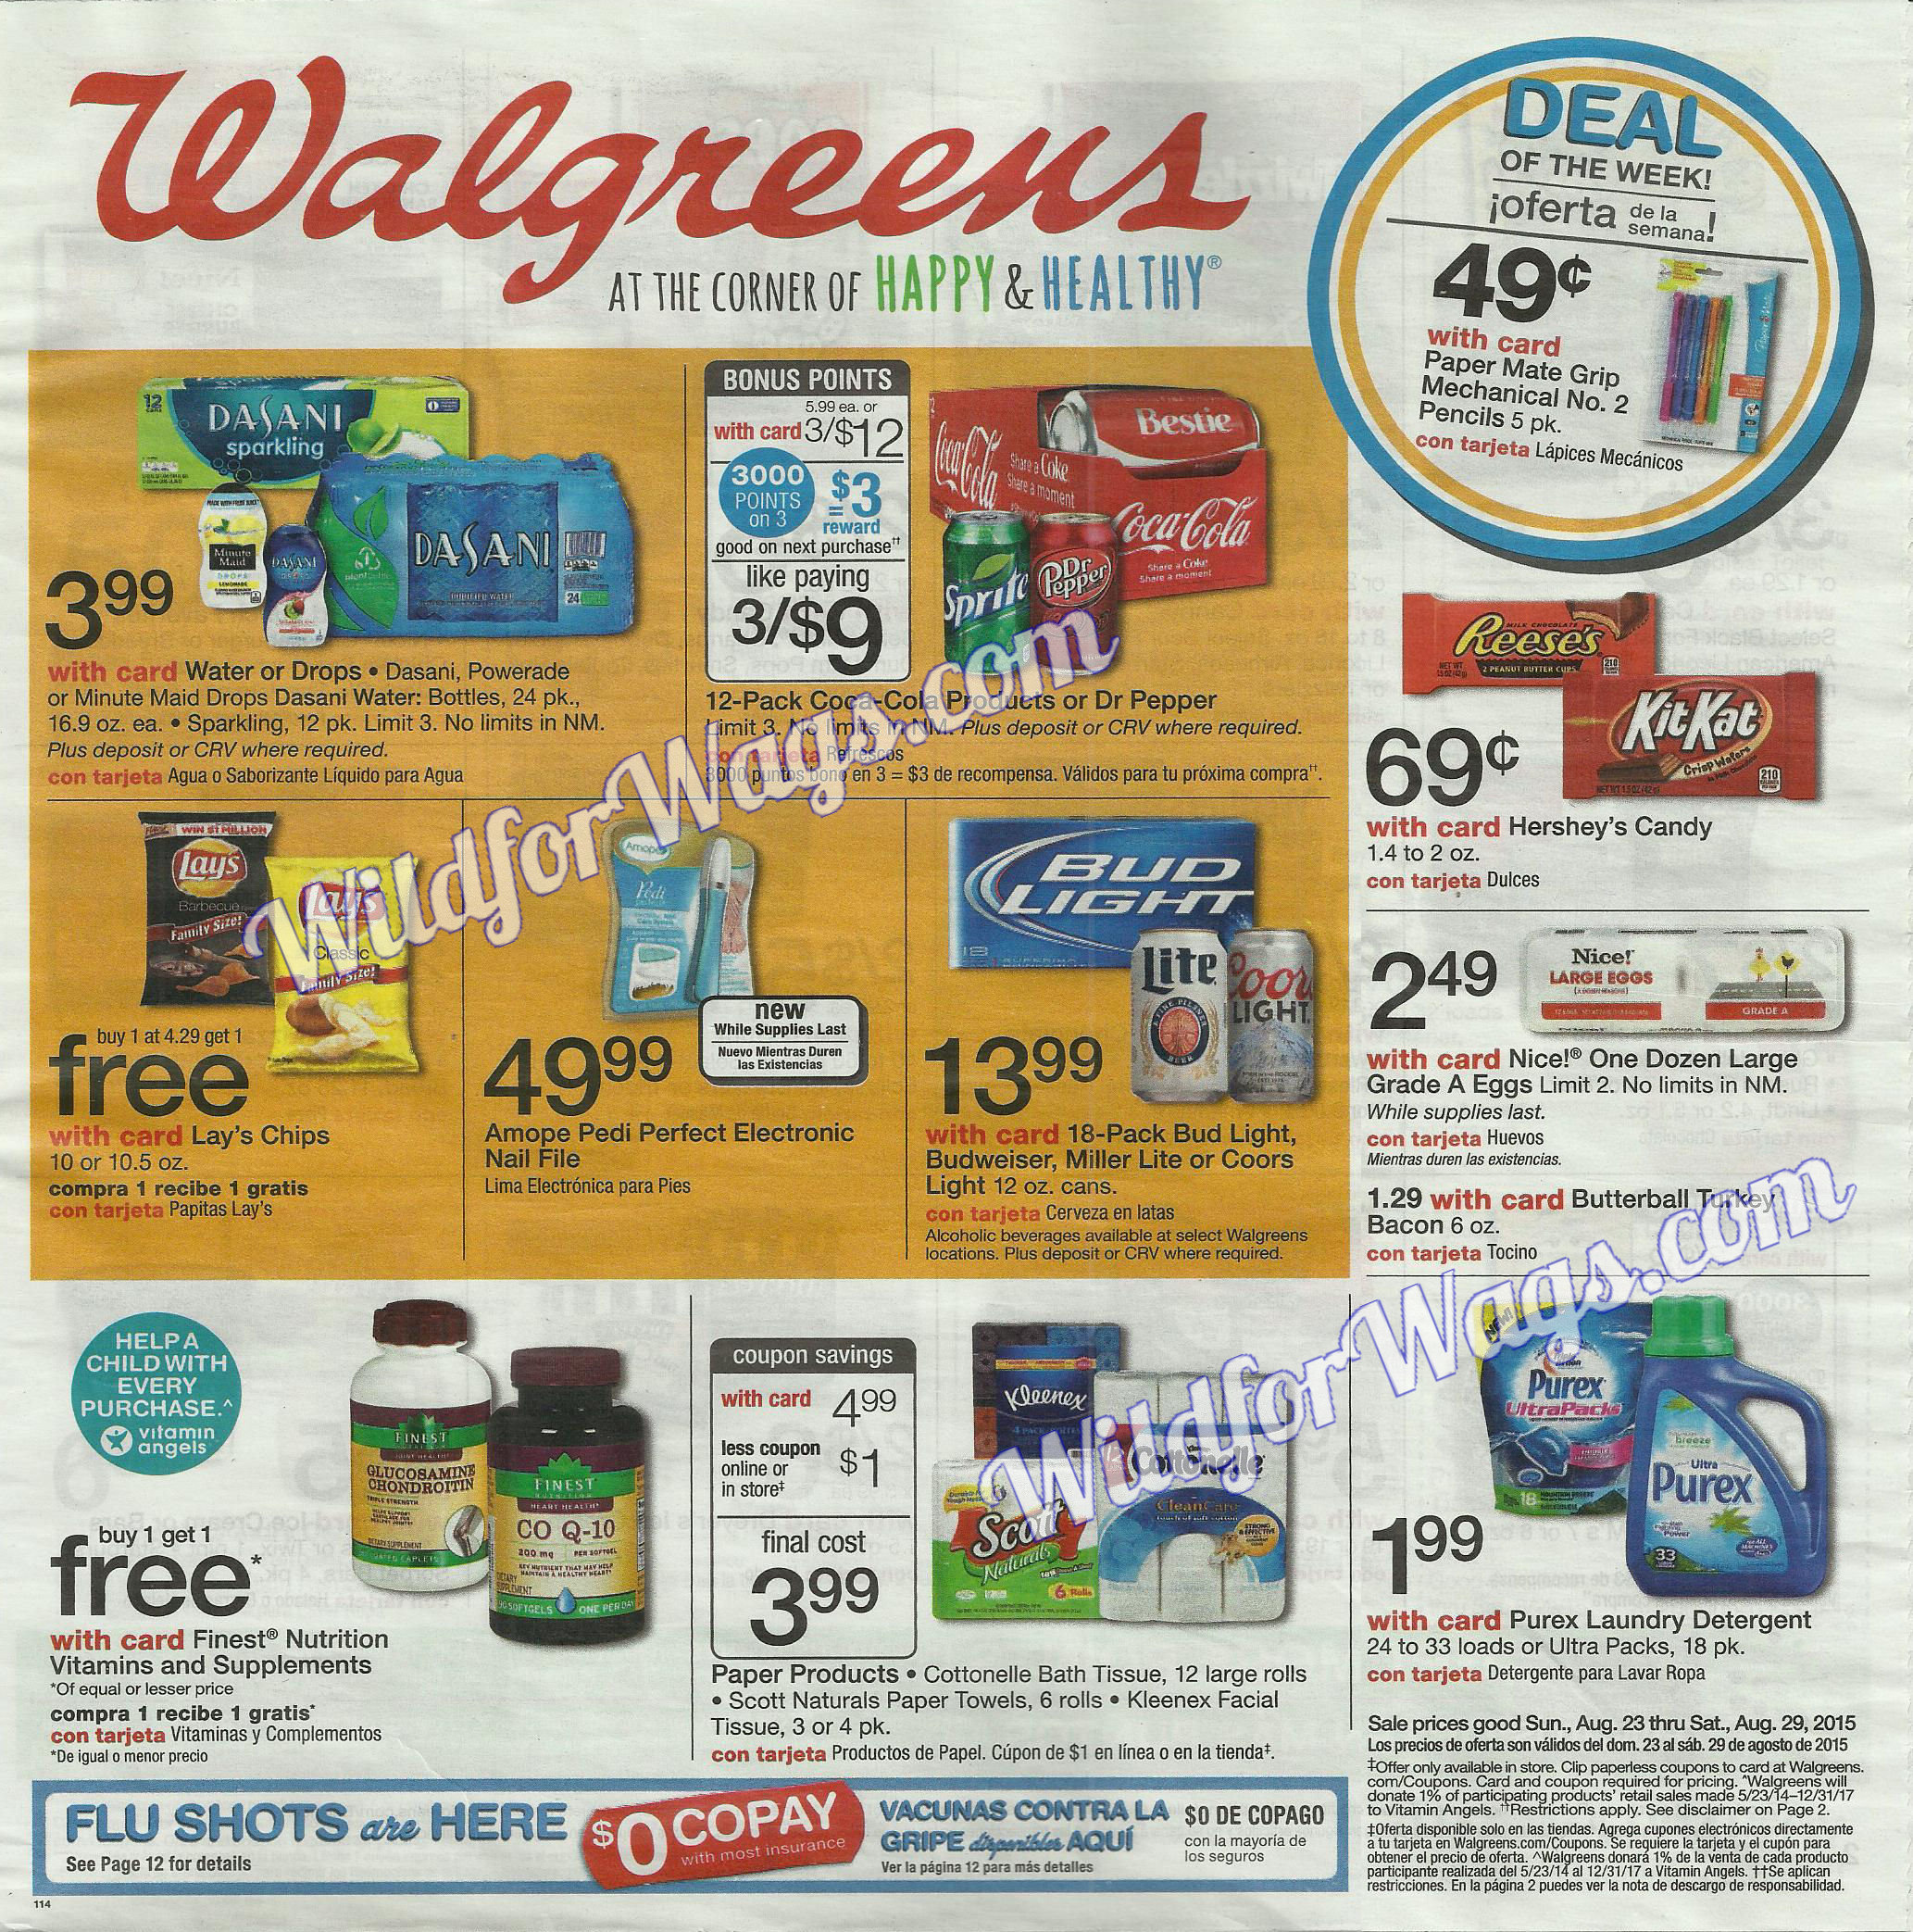 Weekly Ad Weekly Ad. Discover this week's deals, savings and bonus buys at your local Walgreens. View Weekly Ad Keep on saving with Paperless Coupons Paperless Coupons. Now you can save even more with coupons that clip straight to your Balance ® Rewards card. Browse Coupons. See what's on sale this week and how you can earn points at your local Walgreens.